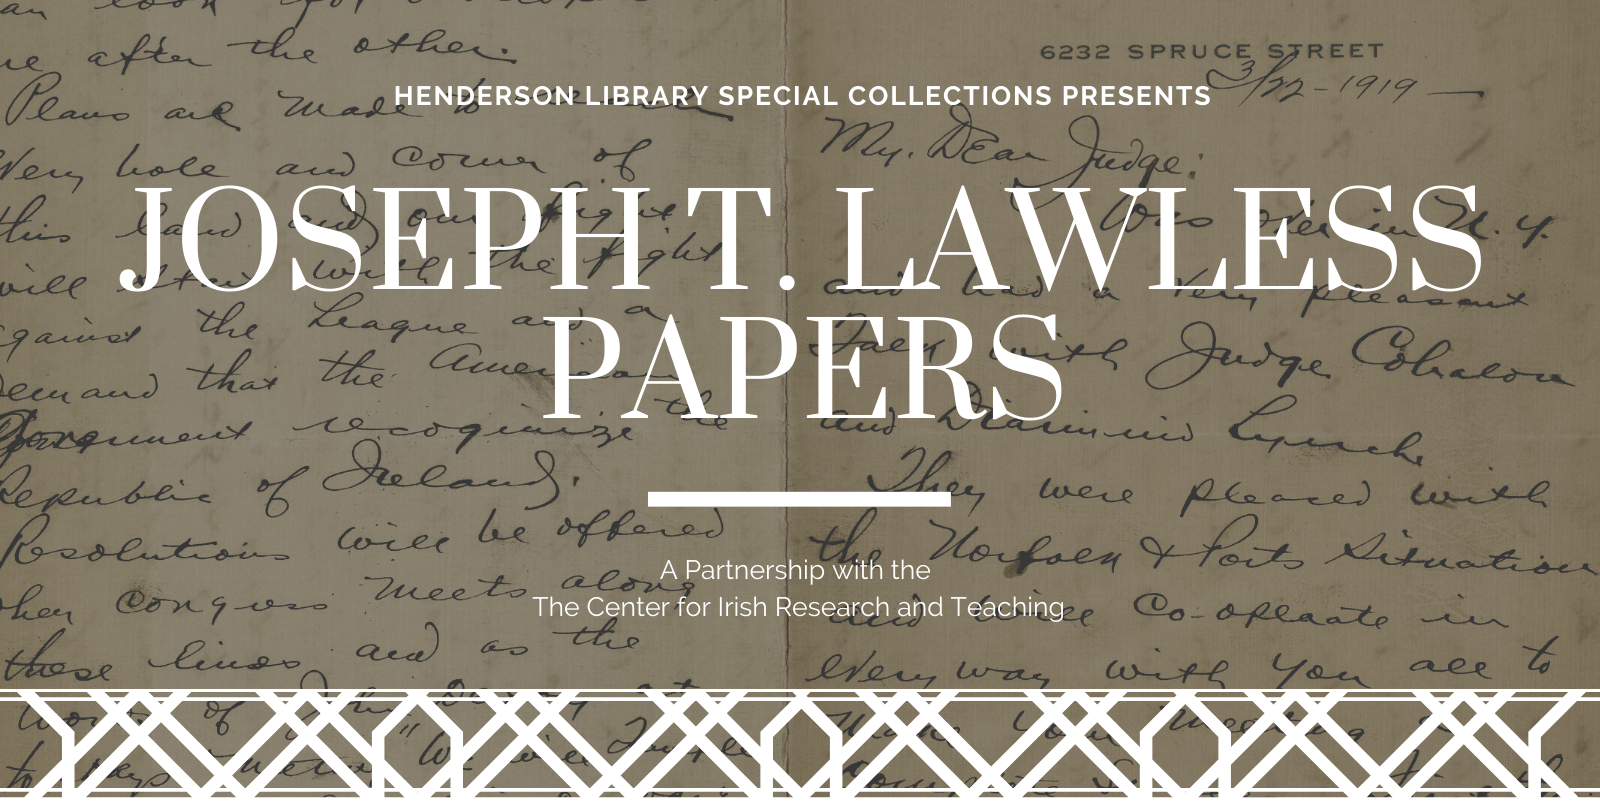 Joseph T. Lawless Papers